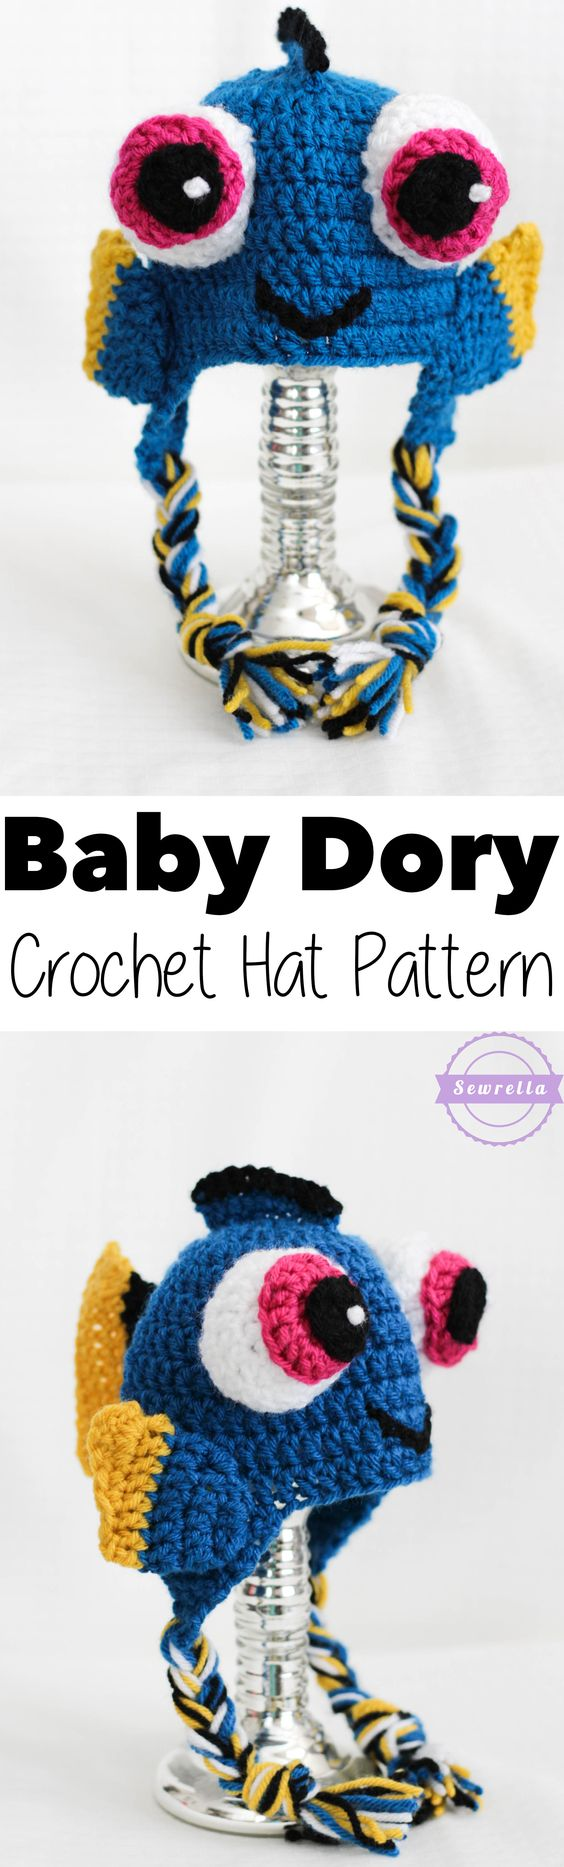 Baby Dory Crochet Hat | Free Pattern from Sewrella: